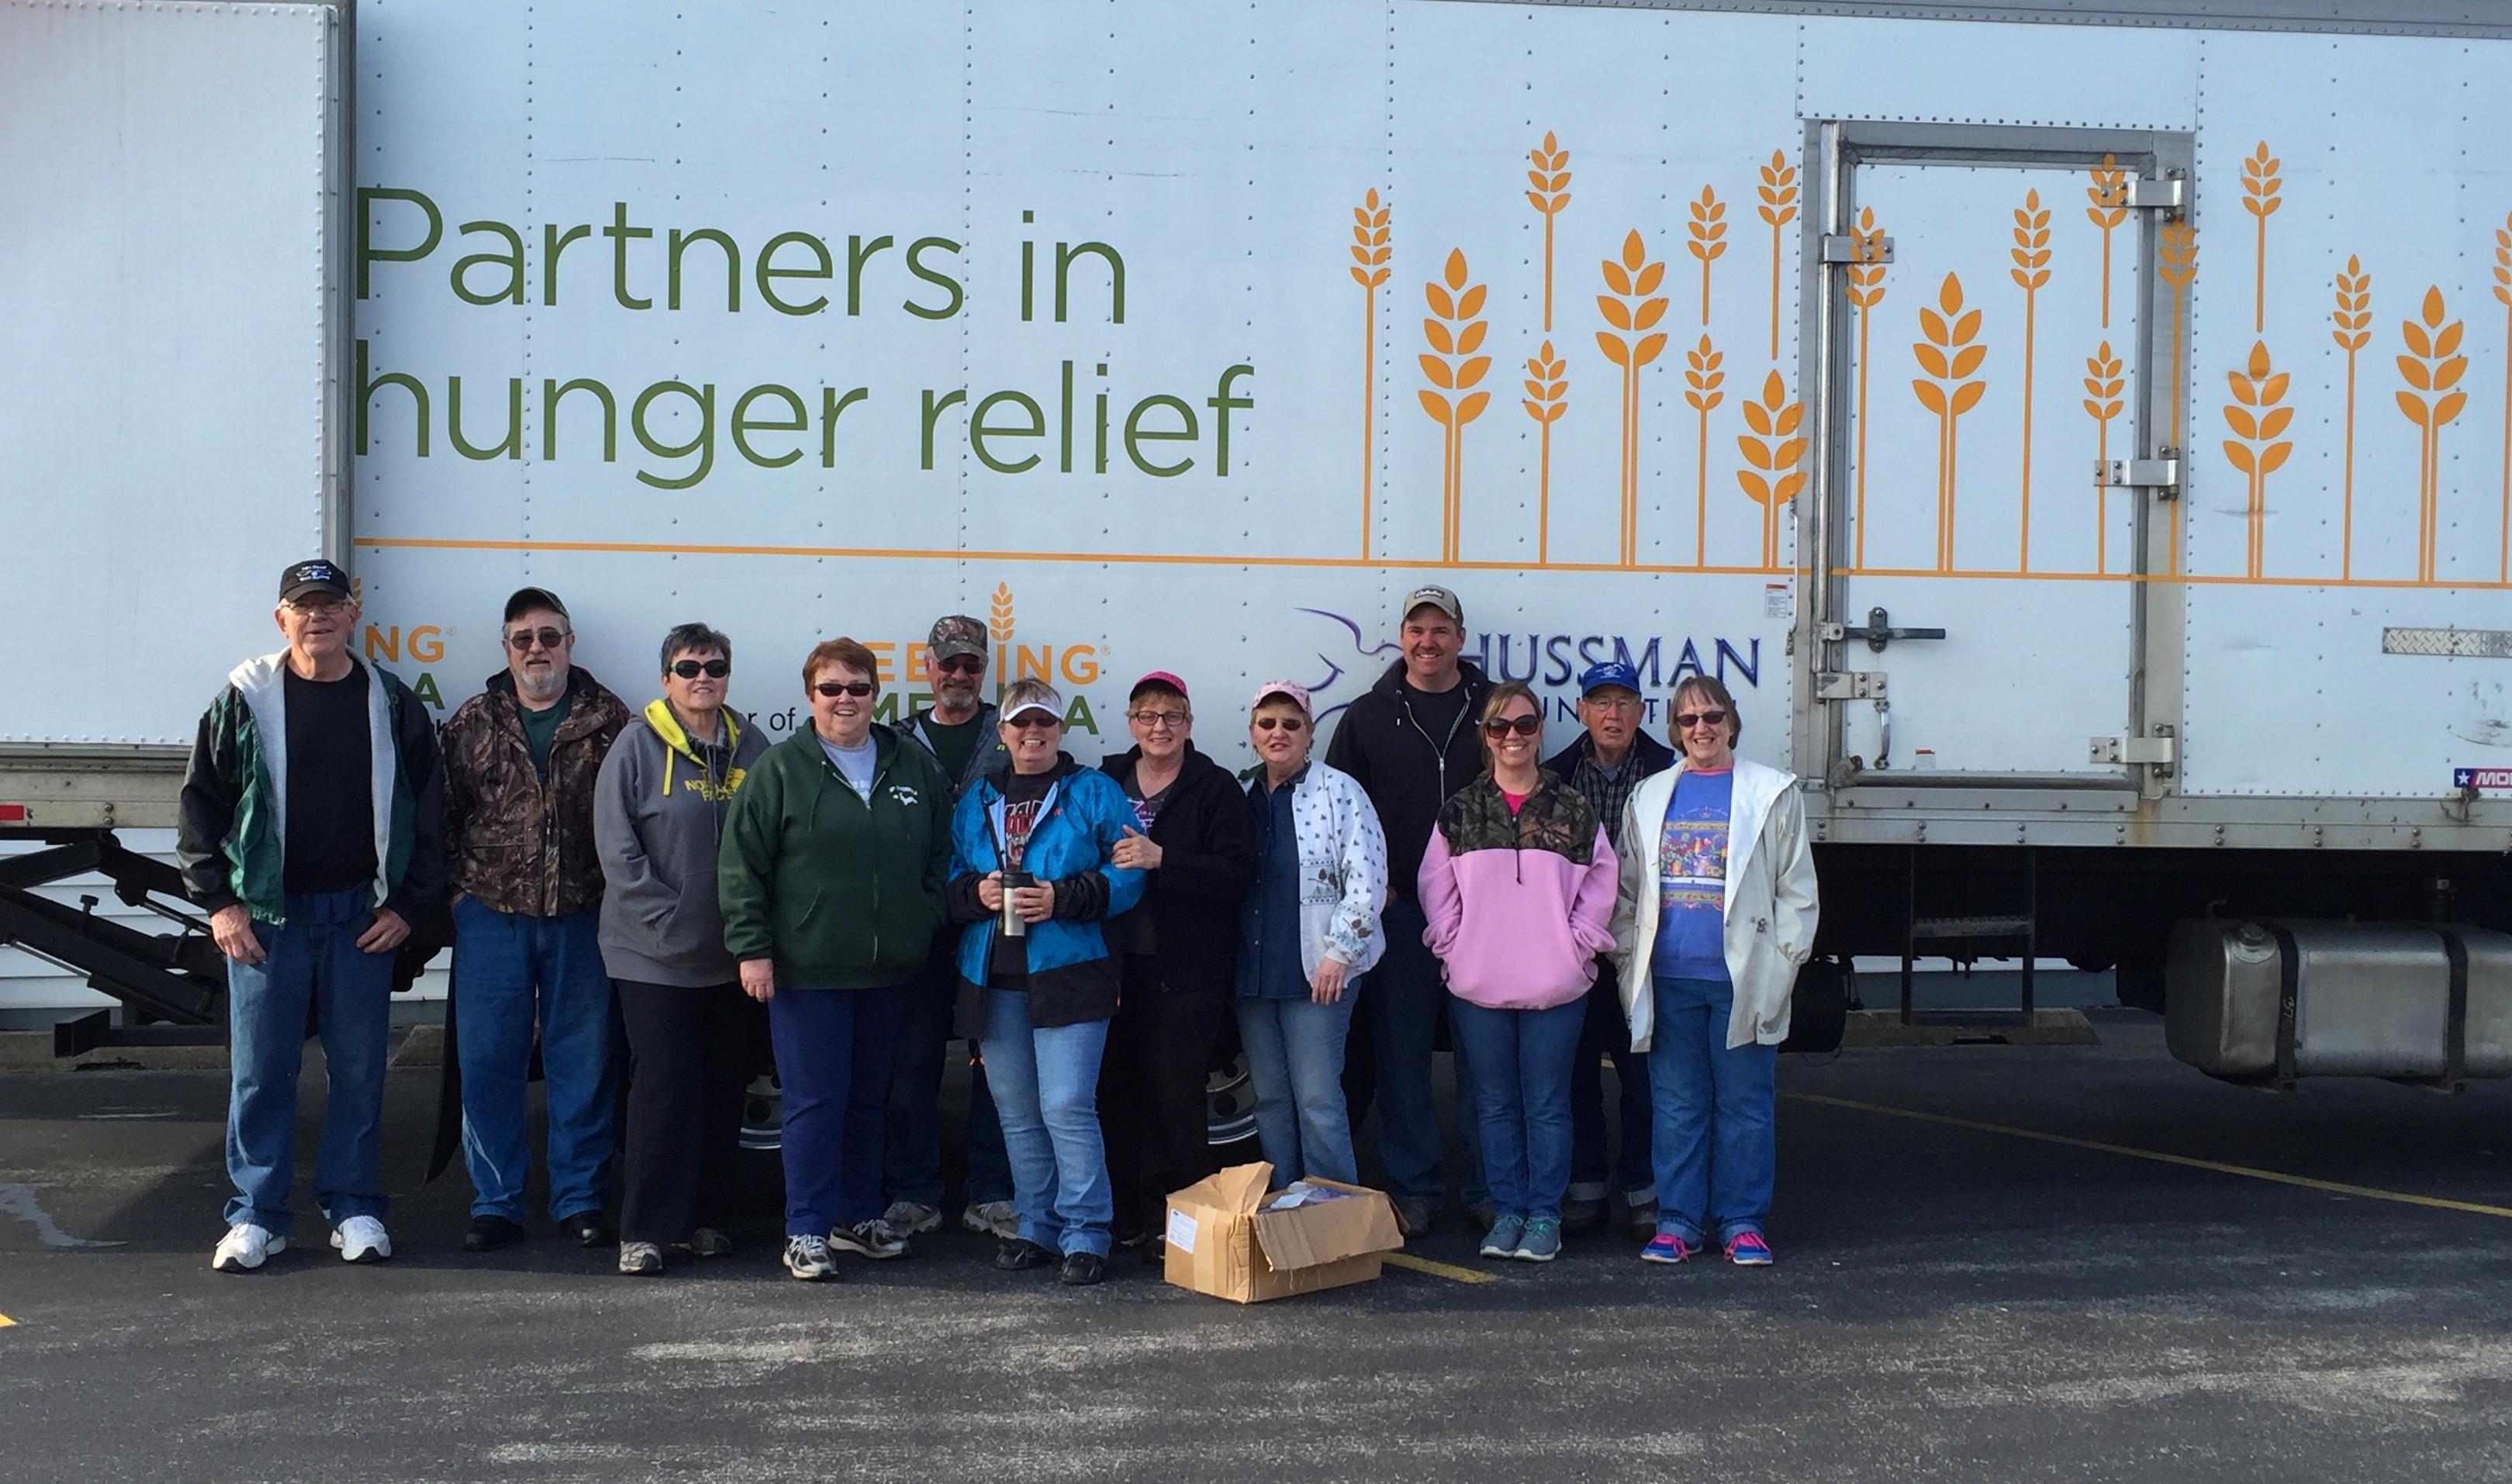 Garden Area Catholic Churches hosted a Mobile Pantry in May and will do so again in June. Credit: Feeding America West Michigan